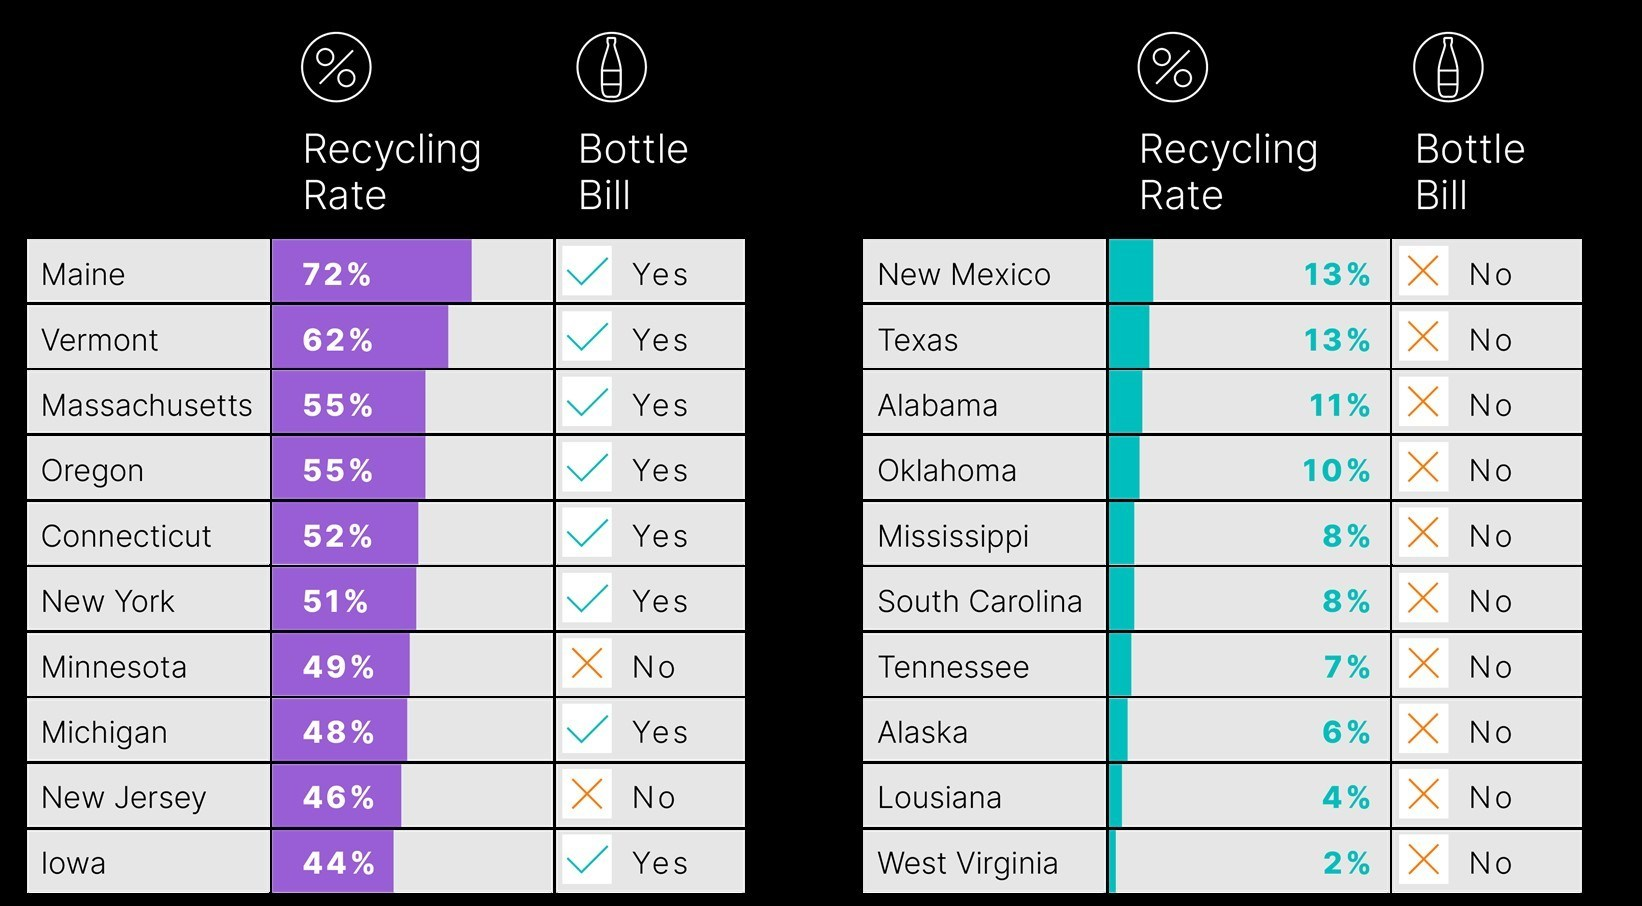 Ball Corporation 50 State of Recycling Report Cover Image